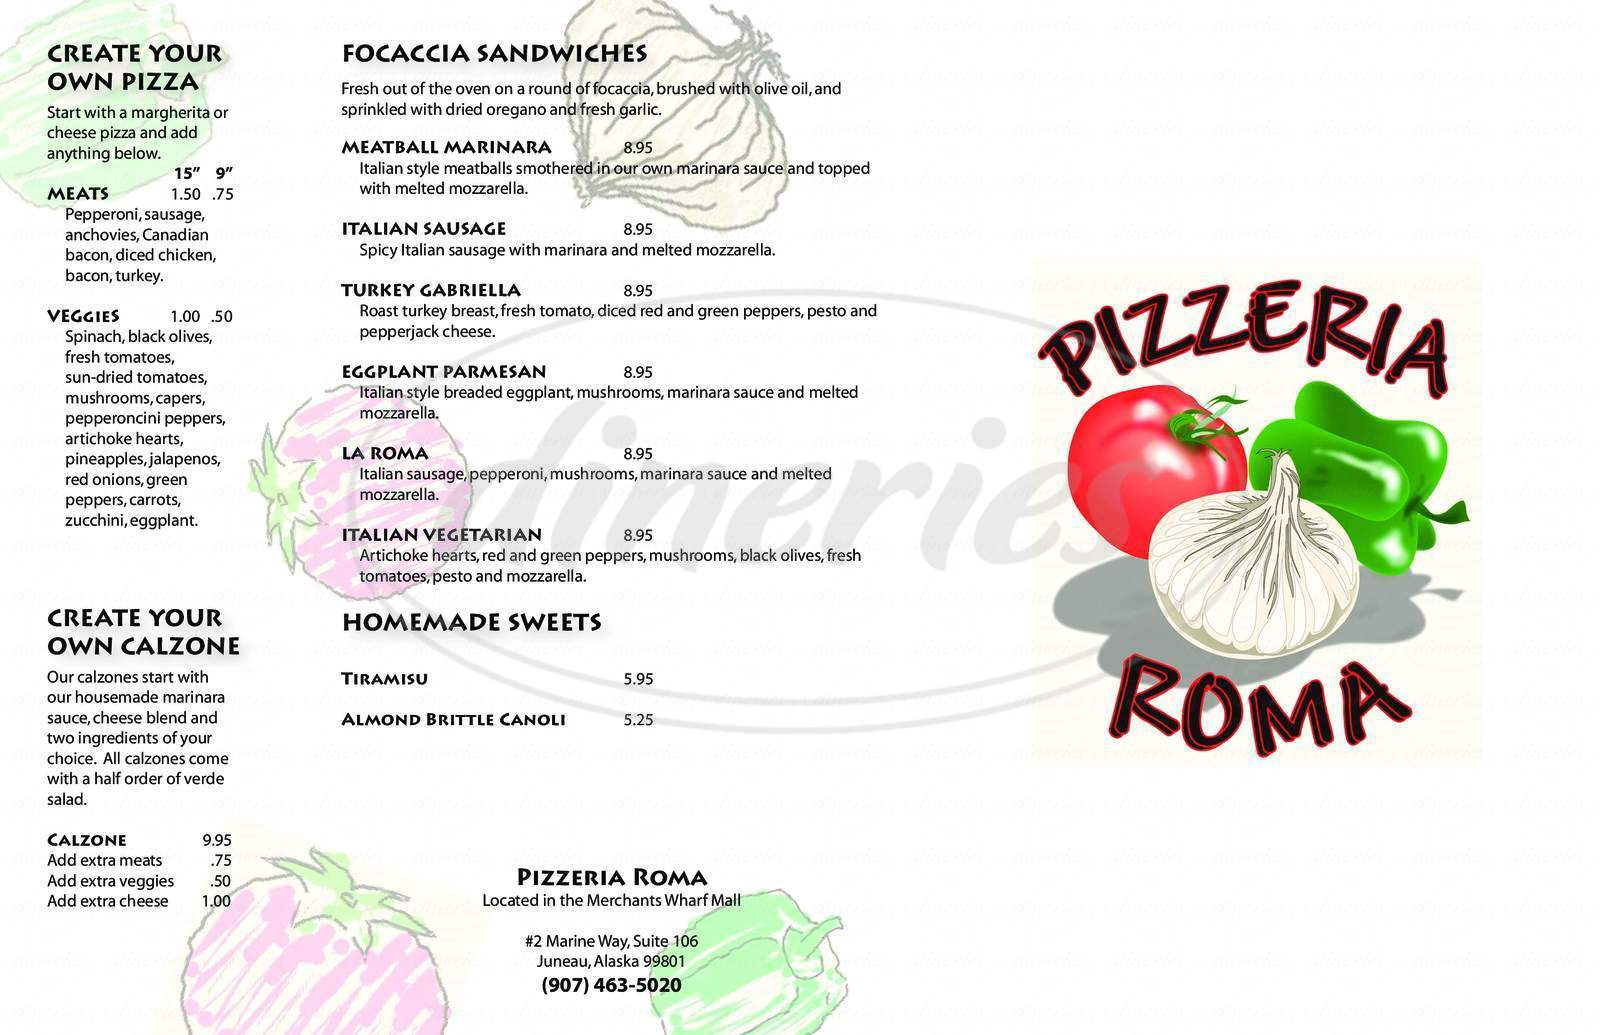 menu for Pizzeria Roma